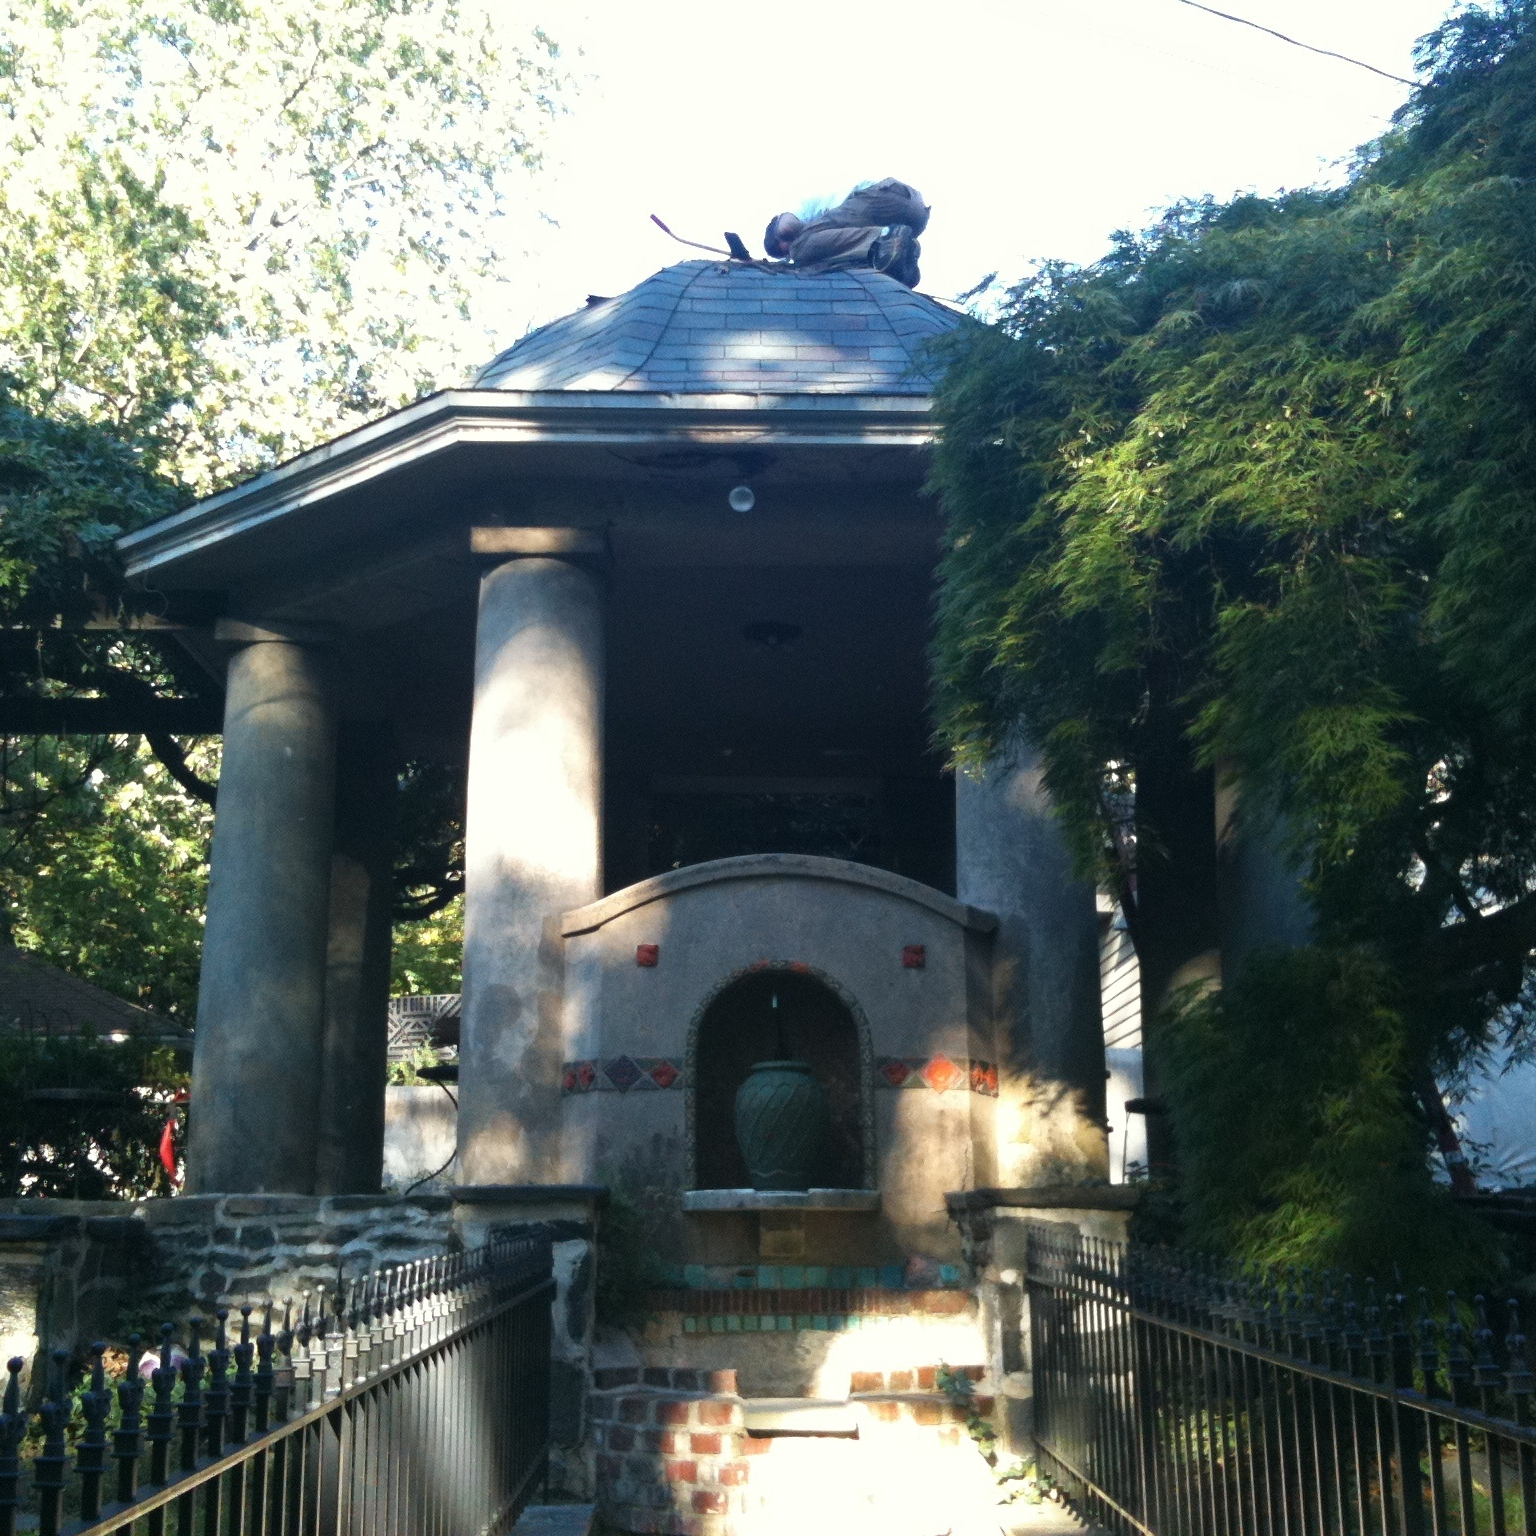 Garden temple restoration – little did we know that this was a real tomb...